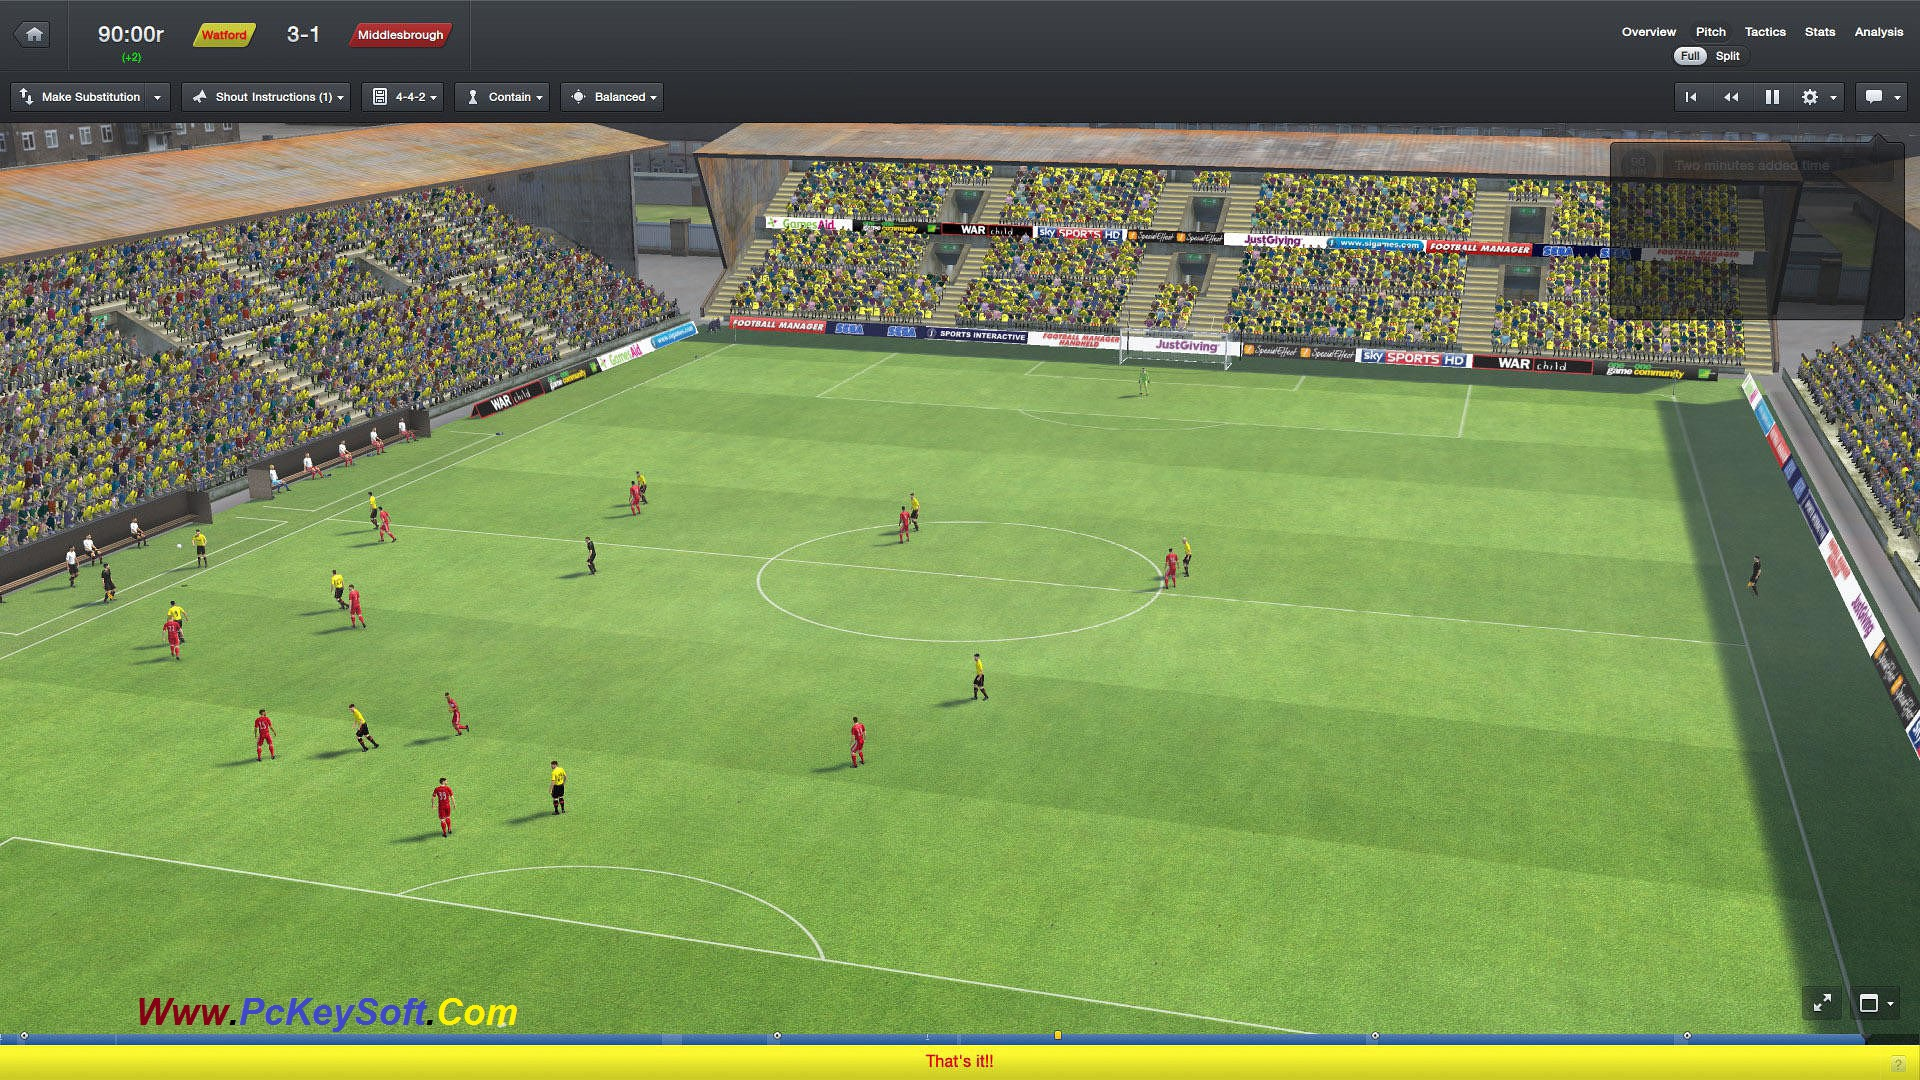 football-manager-2016-crack-download-latest-version-pc-PcKeySoft-Com